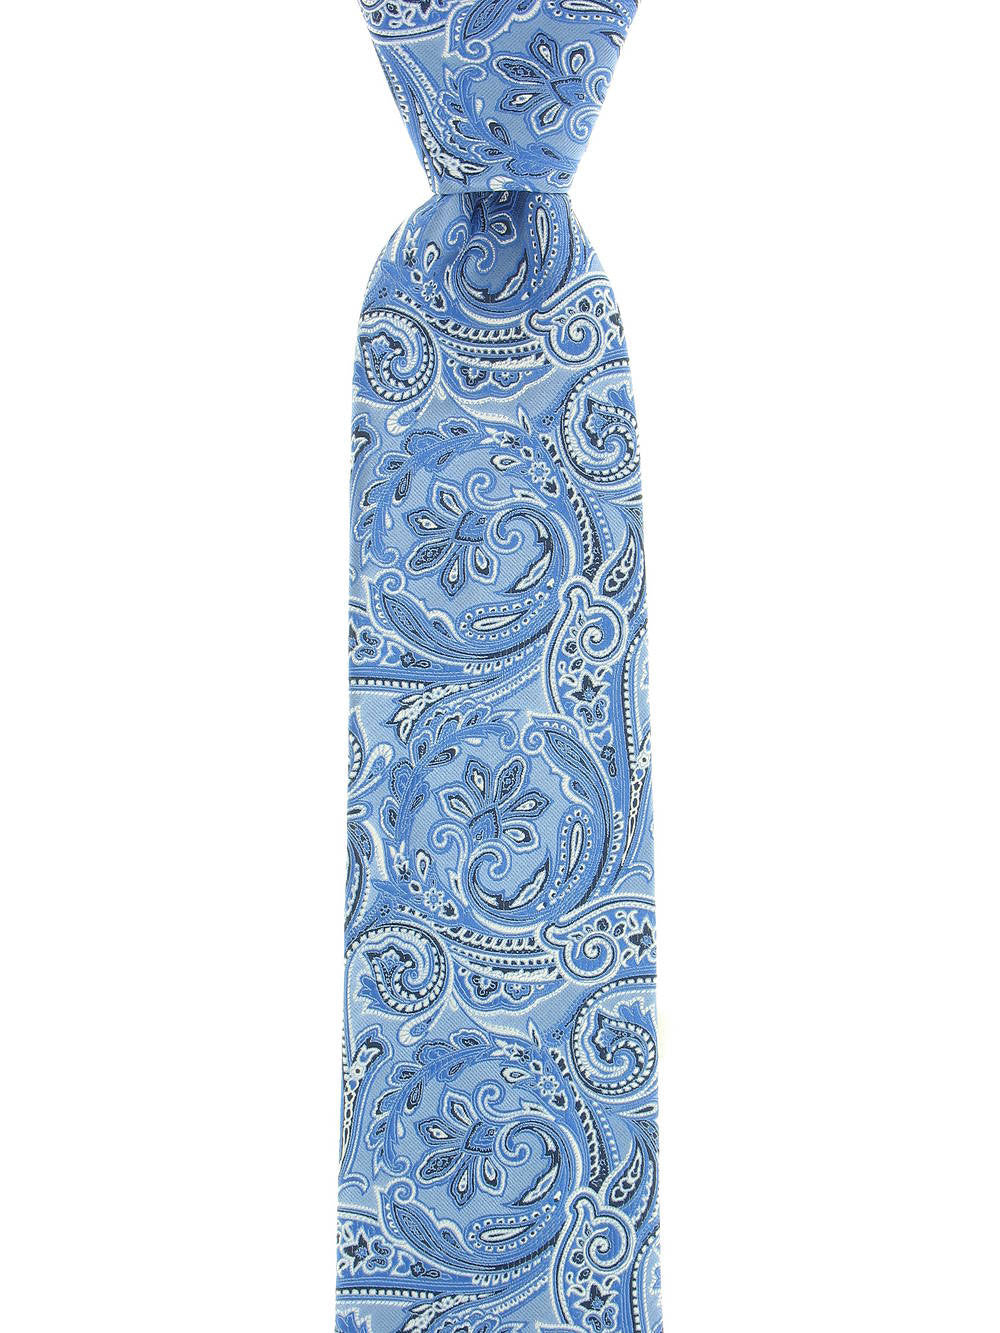 Geoffrey Beene Mens Light Blue Paisley Tie